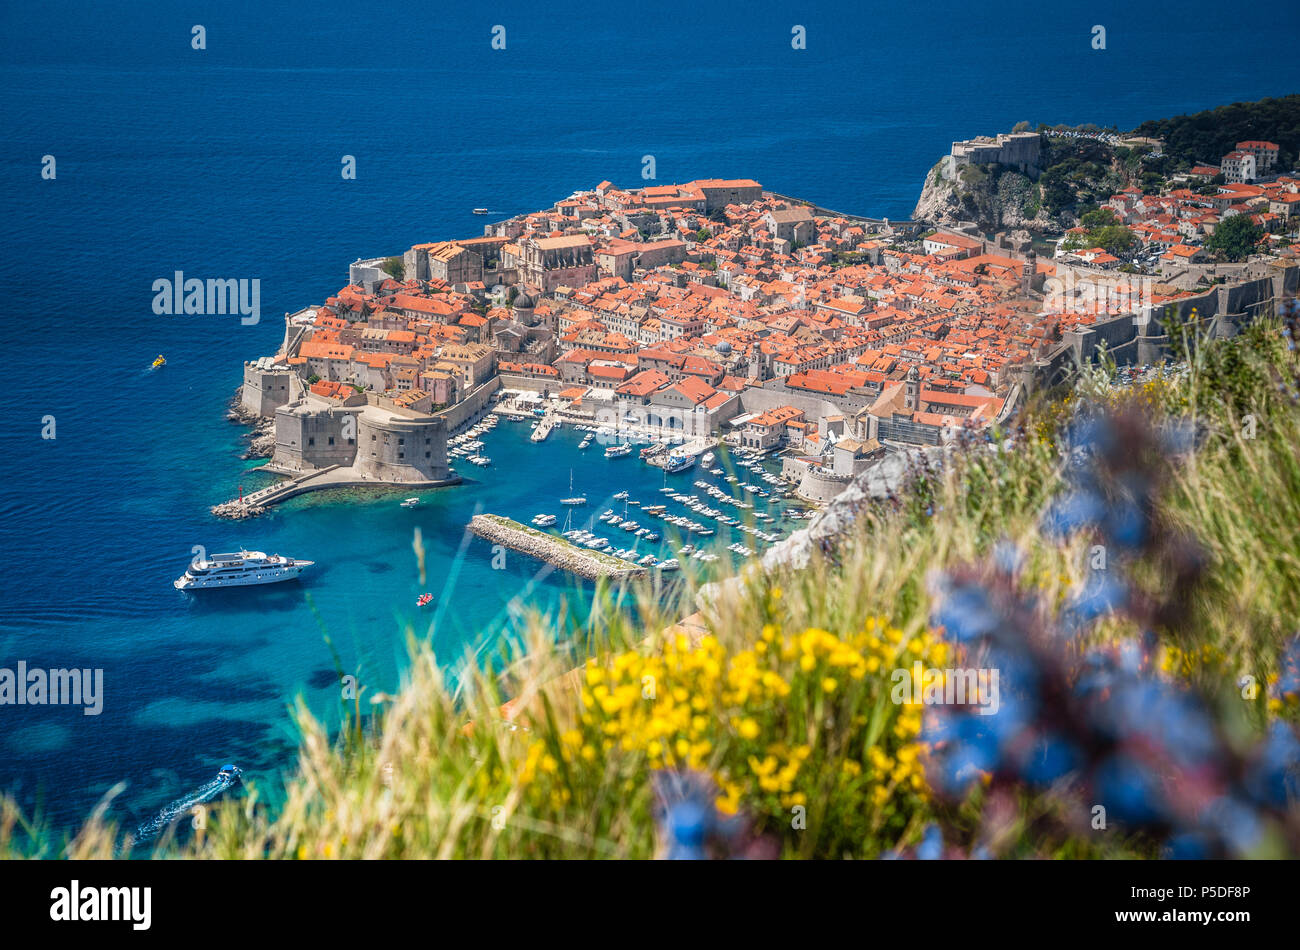 Panoramic aerial view of the historic town of Dubrovnik, one of the most famous tourist destinations in the Mediterranean Sea, from Srd mountain - Stock Image